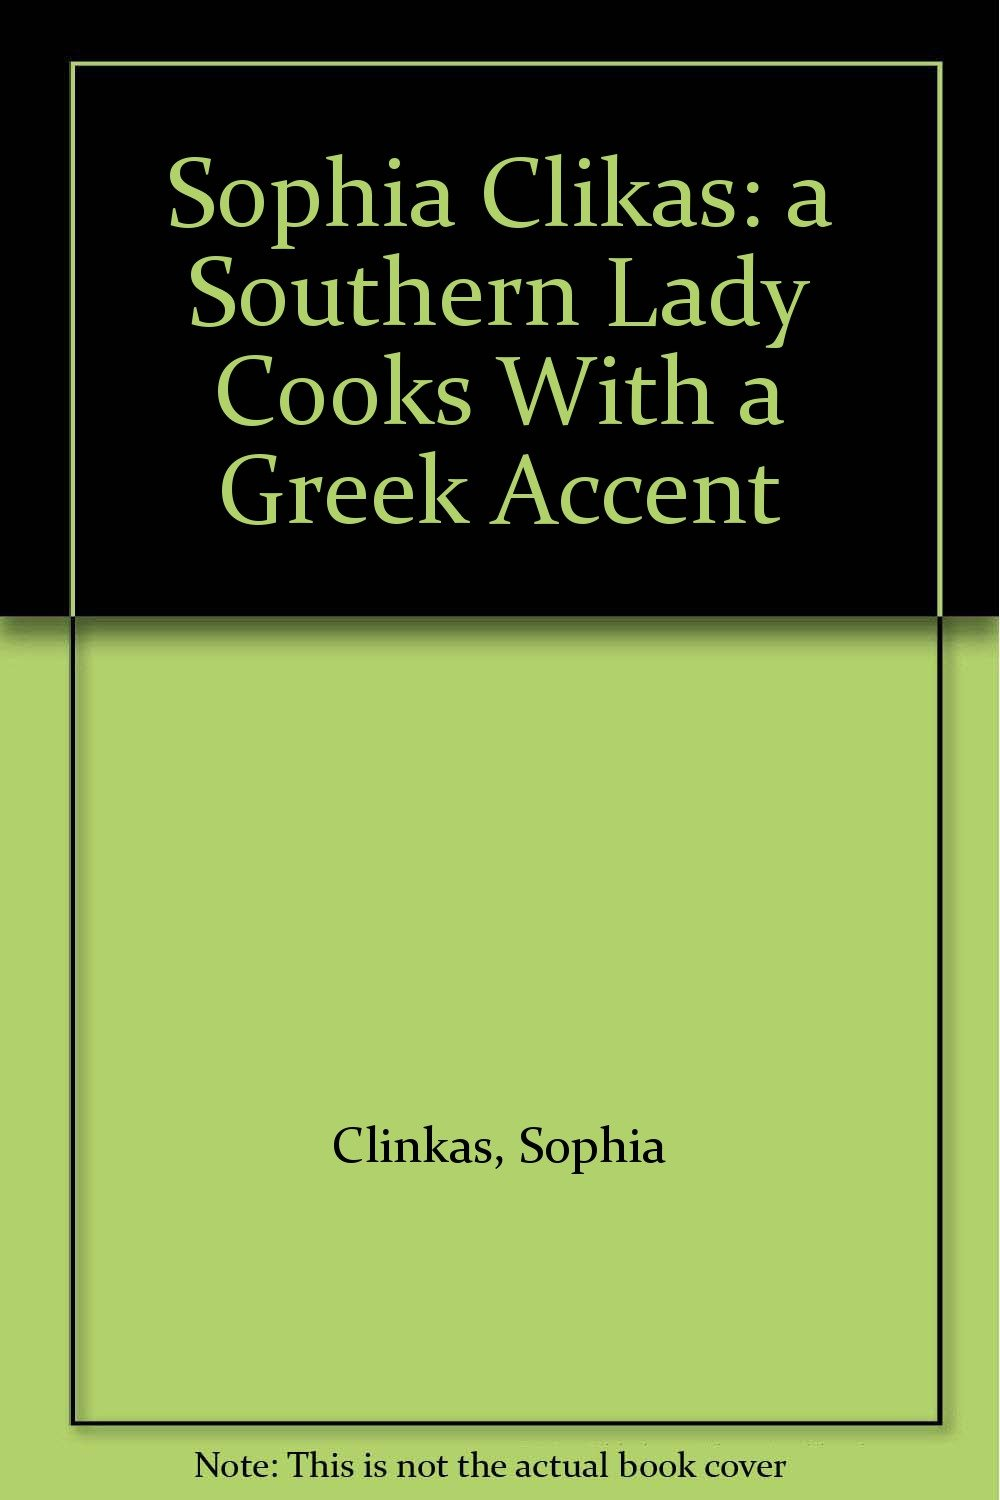 Sophia Clikas: a Southern Lady Cooks With a Greek Accent